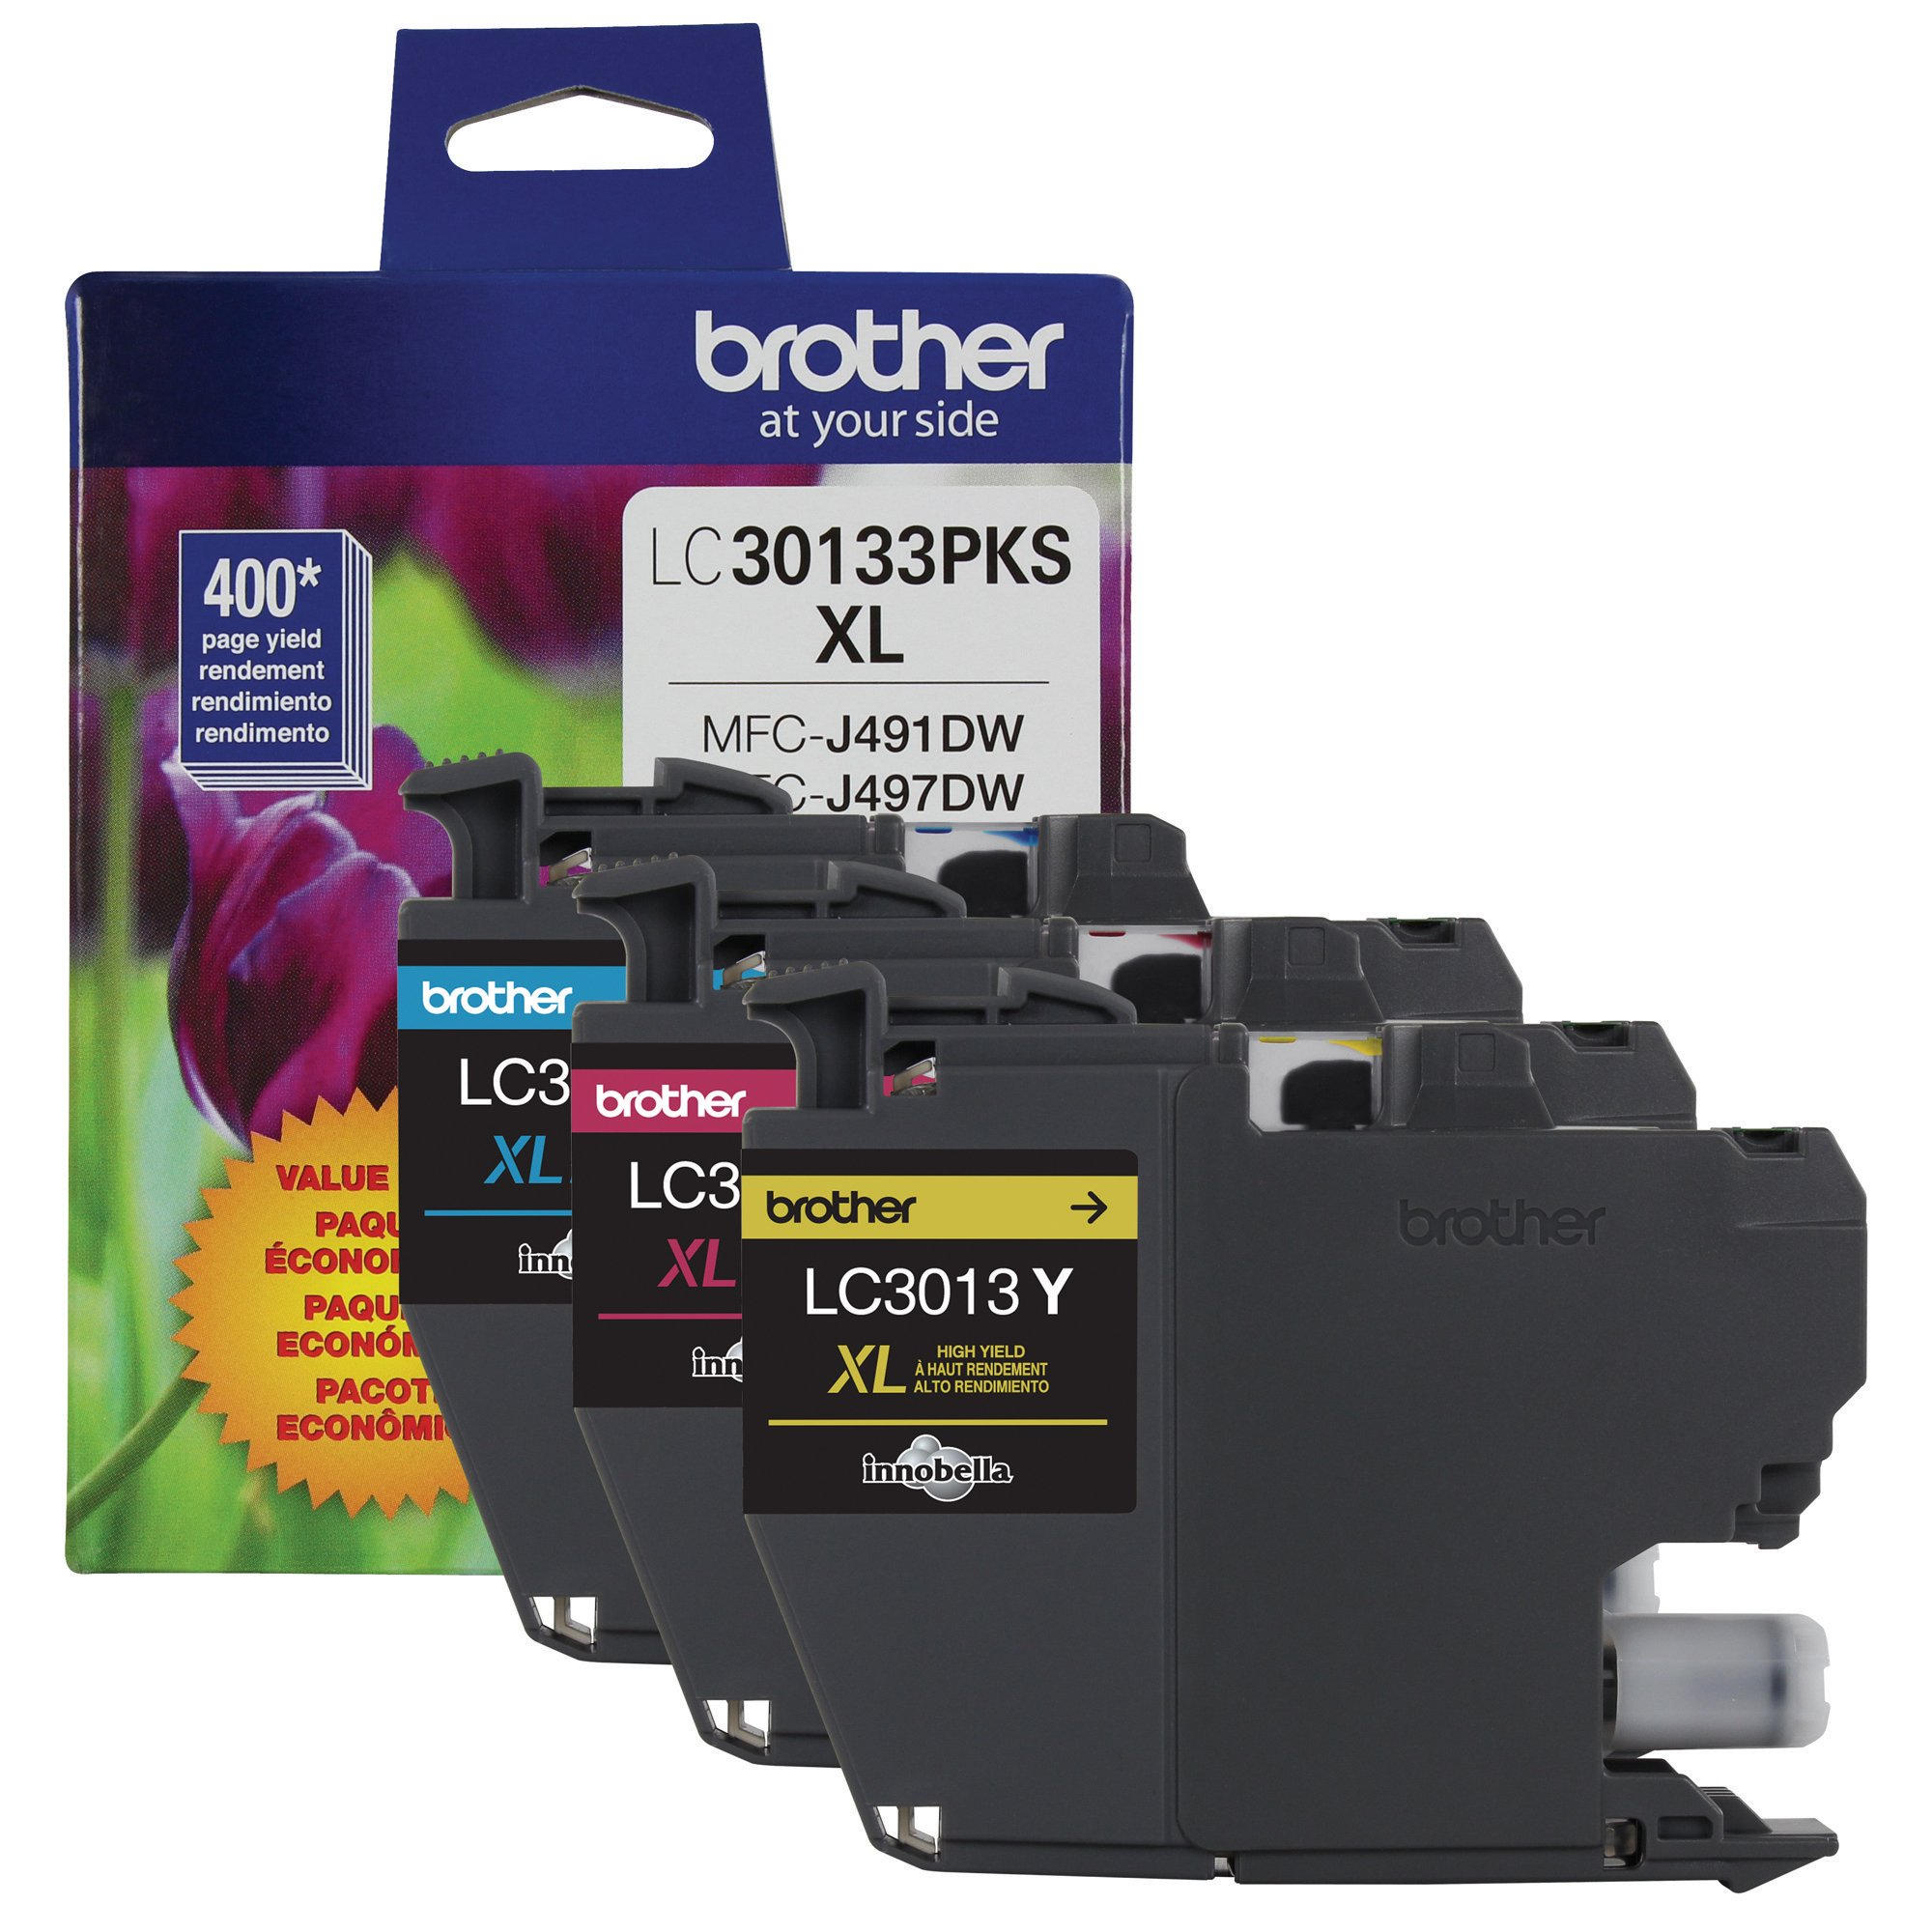 Brother Genuine LC30133PKS 3-Pack High Yield Color Ink Cartridges, Page Yield up to 400 Pages/Cartridge, Includes Cyan, Magenta and Yellow, LC3013